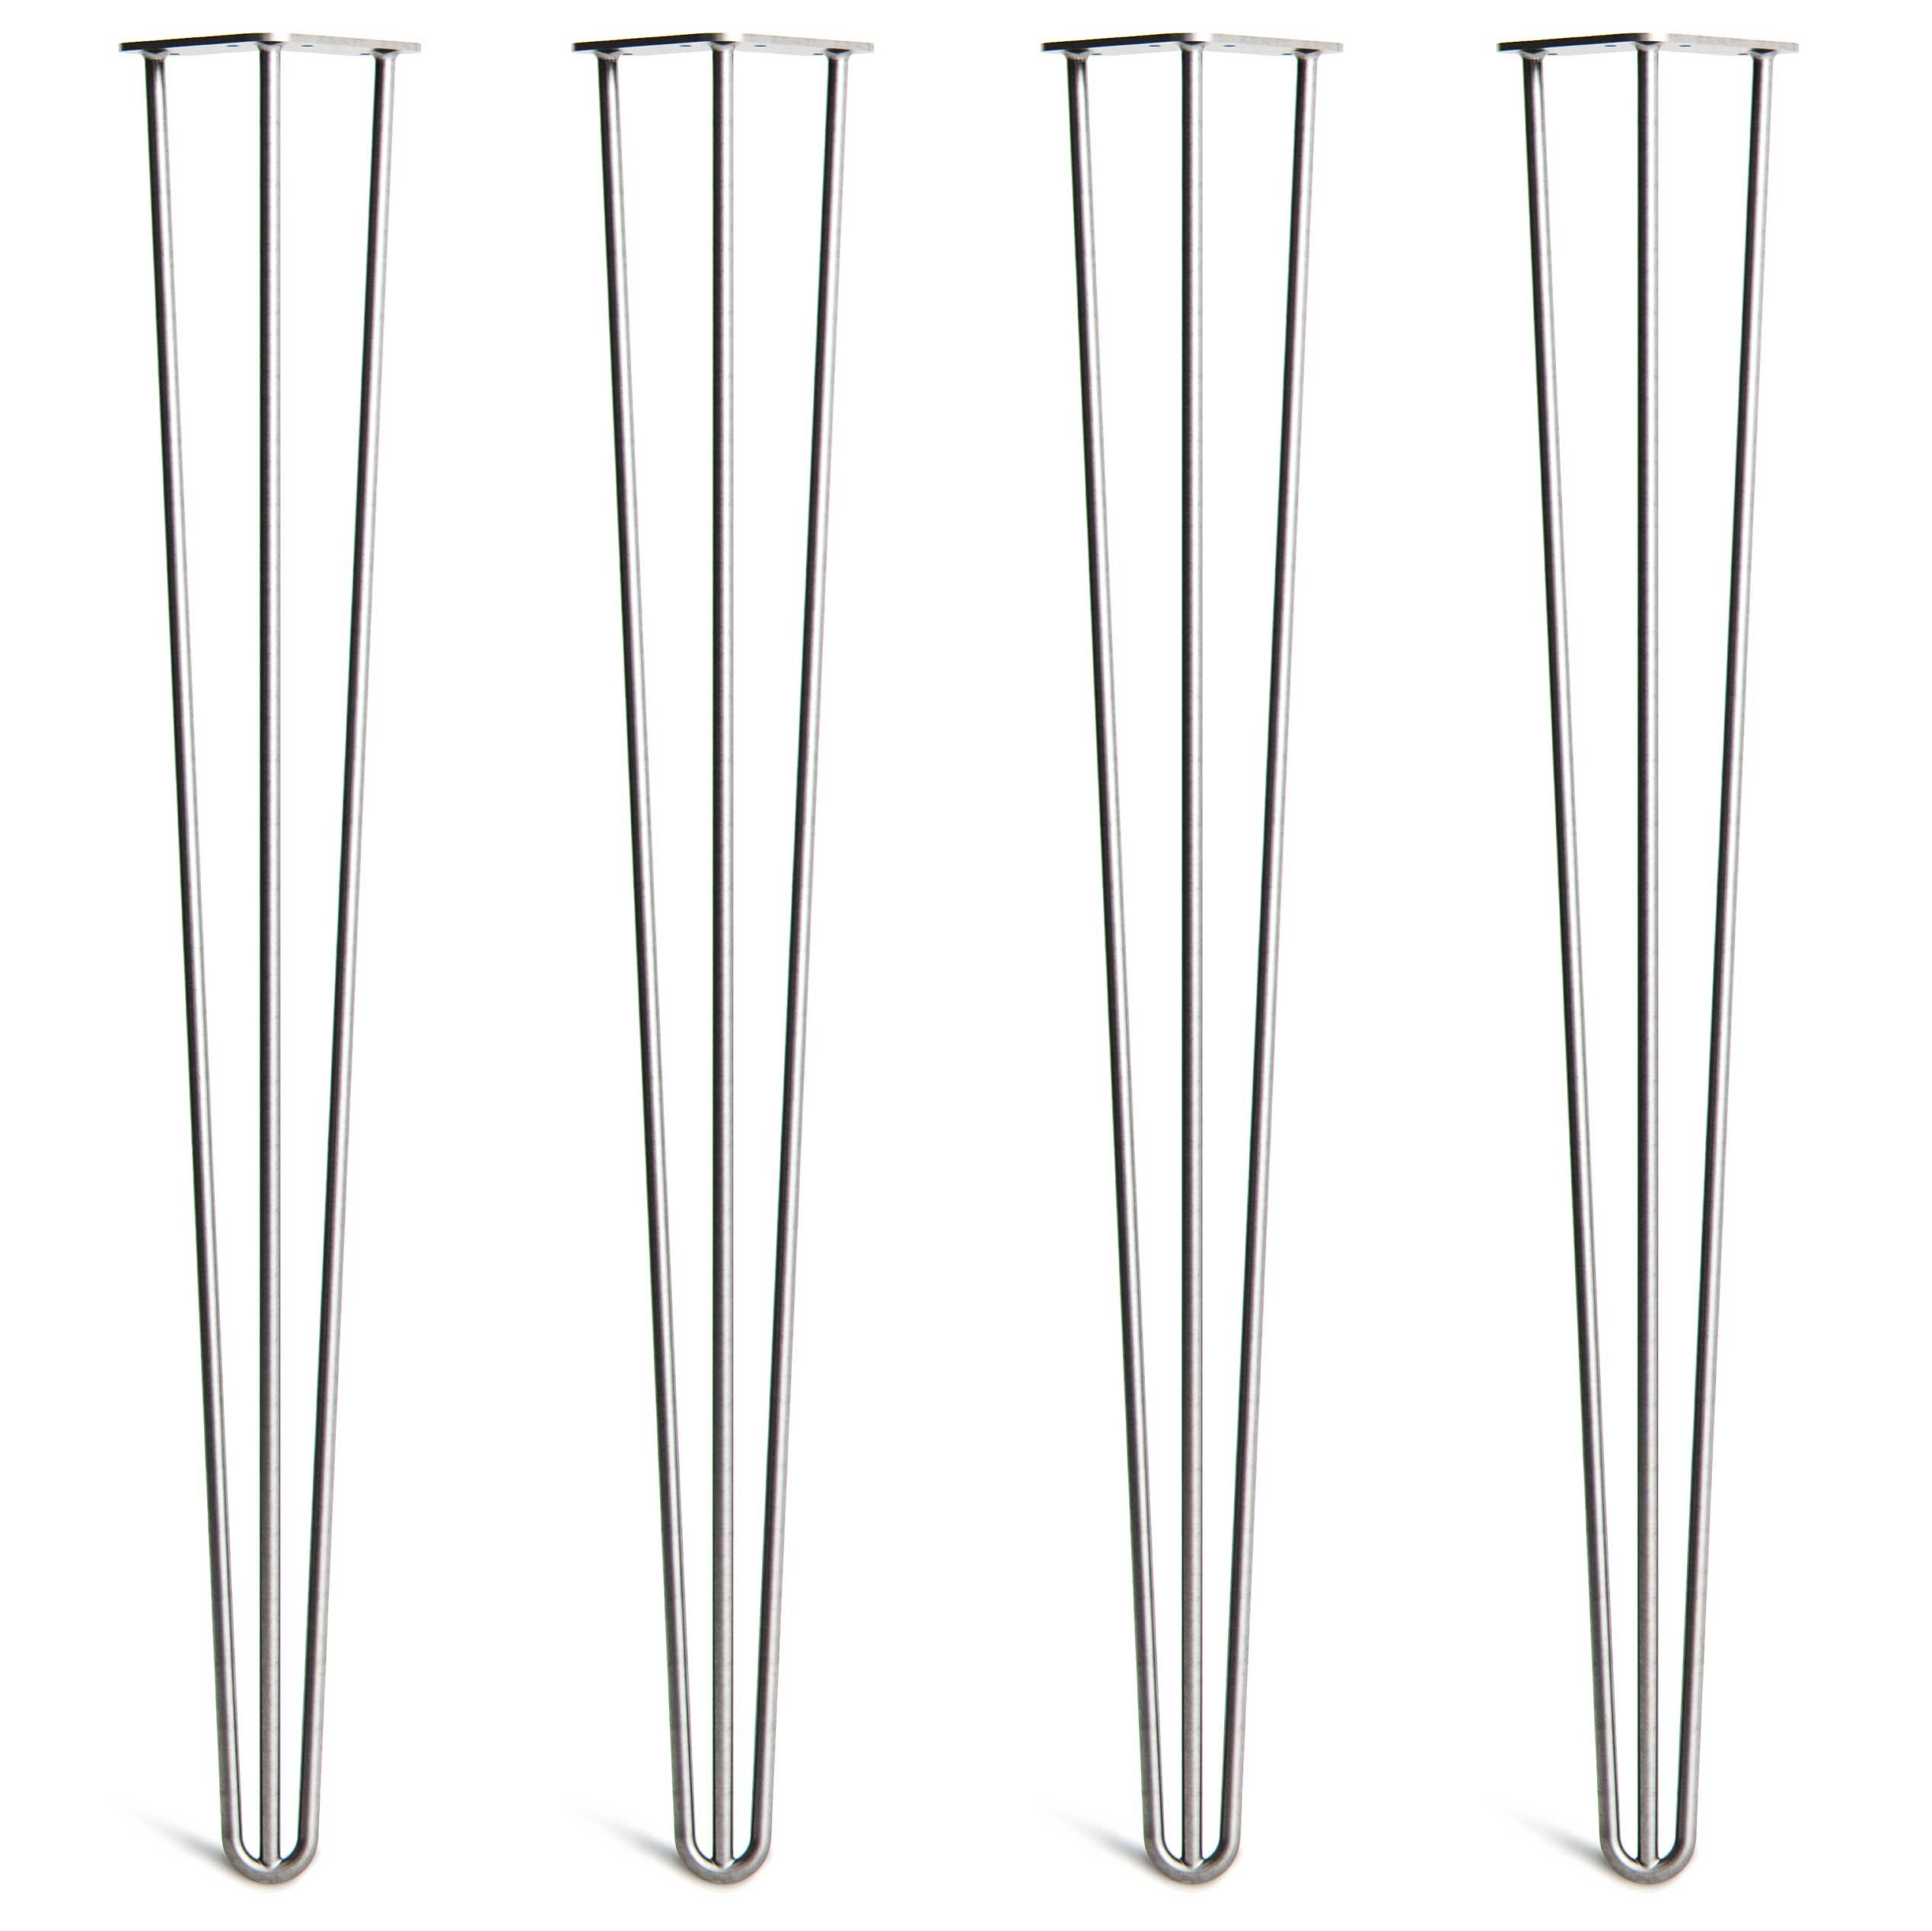 4 x Hairpin Table Legs - Superior Double Weld Steel Construction with Free Screws, Build Guide & Protector Feet, Worth $10! - 4'' to 34'', All Finishes, Classic 3/8 inch [34'', 3 Rod, Raw]